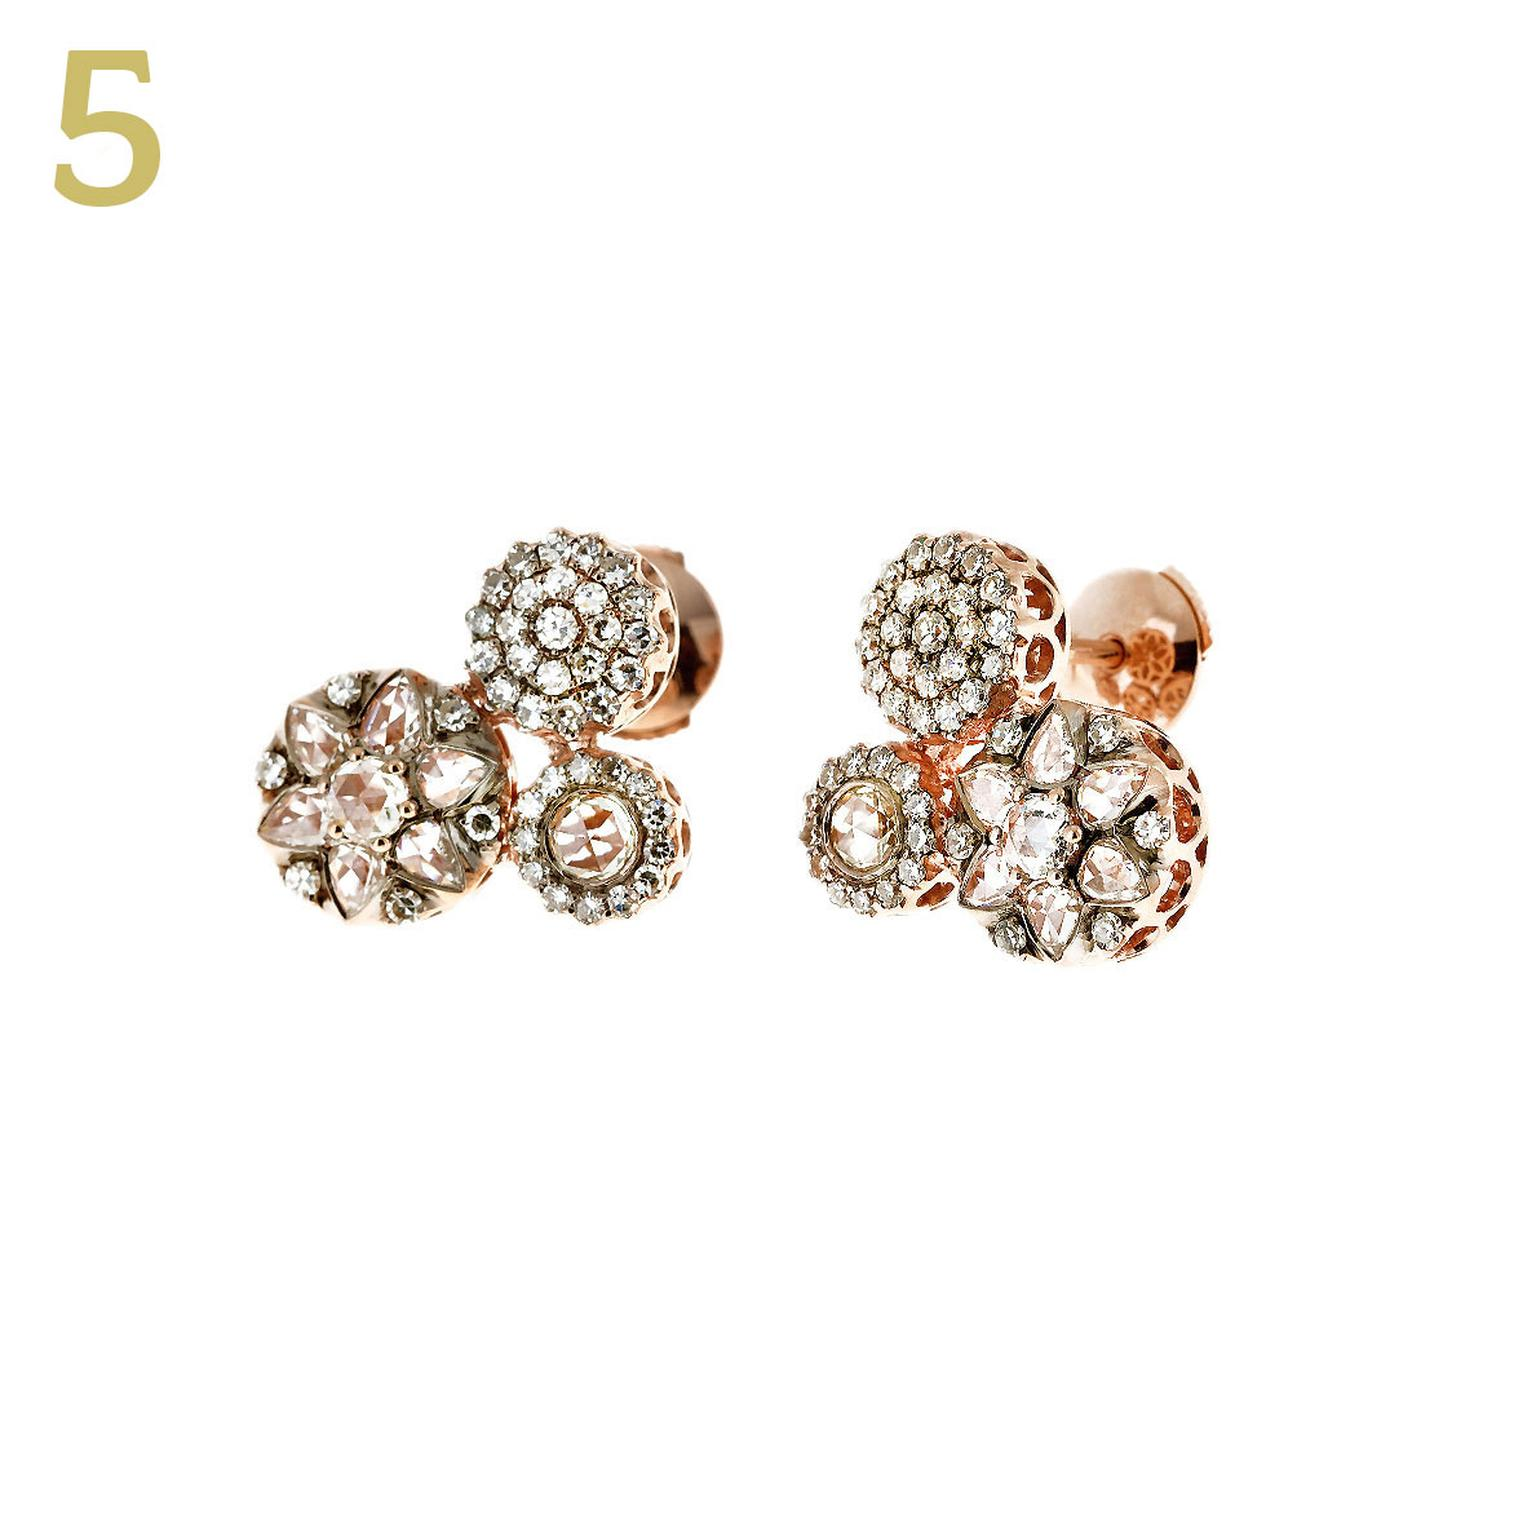 Selim Mouzannar diamond earrings